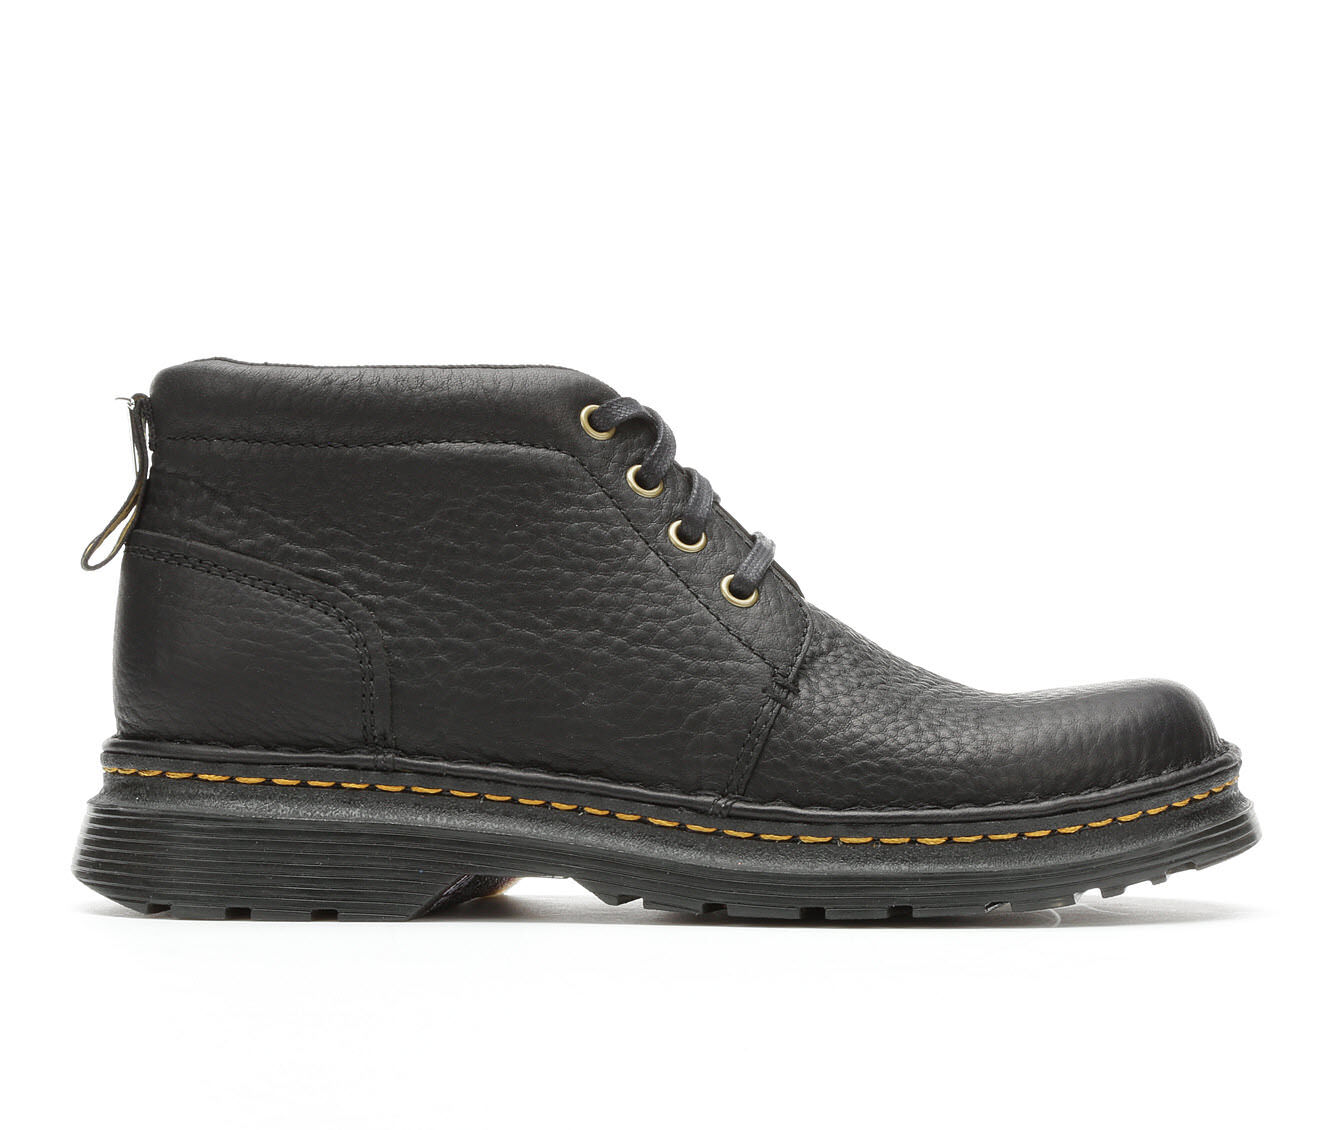 huge surprise sale online Men's Dr. Martens Leather 4 Eye Chukka Boots buy cheap finishline clearance discount zUQxanY